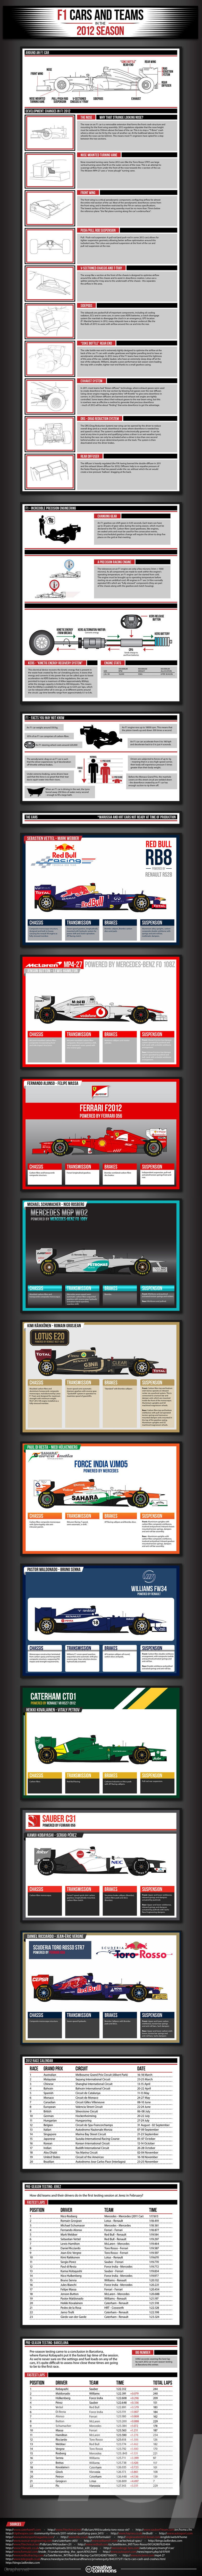 F1 Cars and Teams in 2012 season